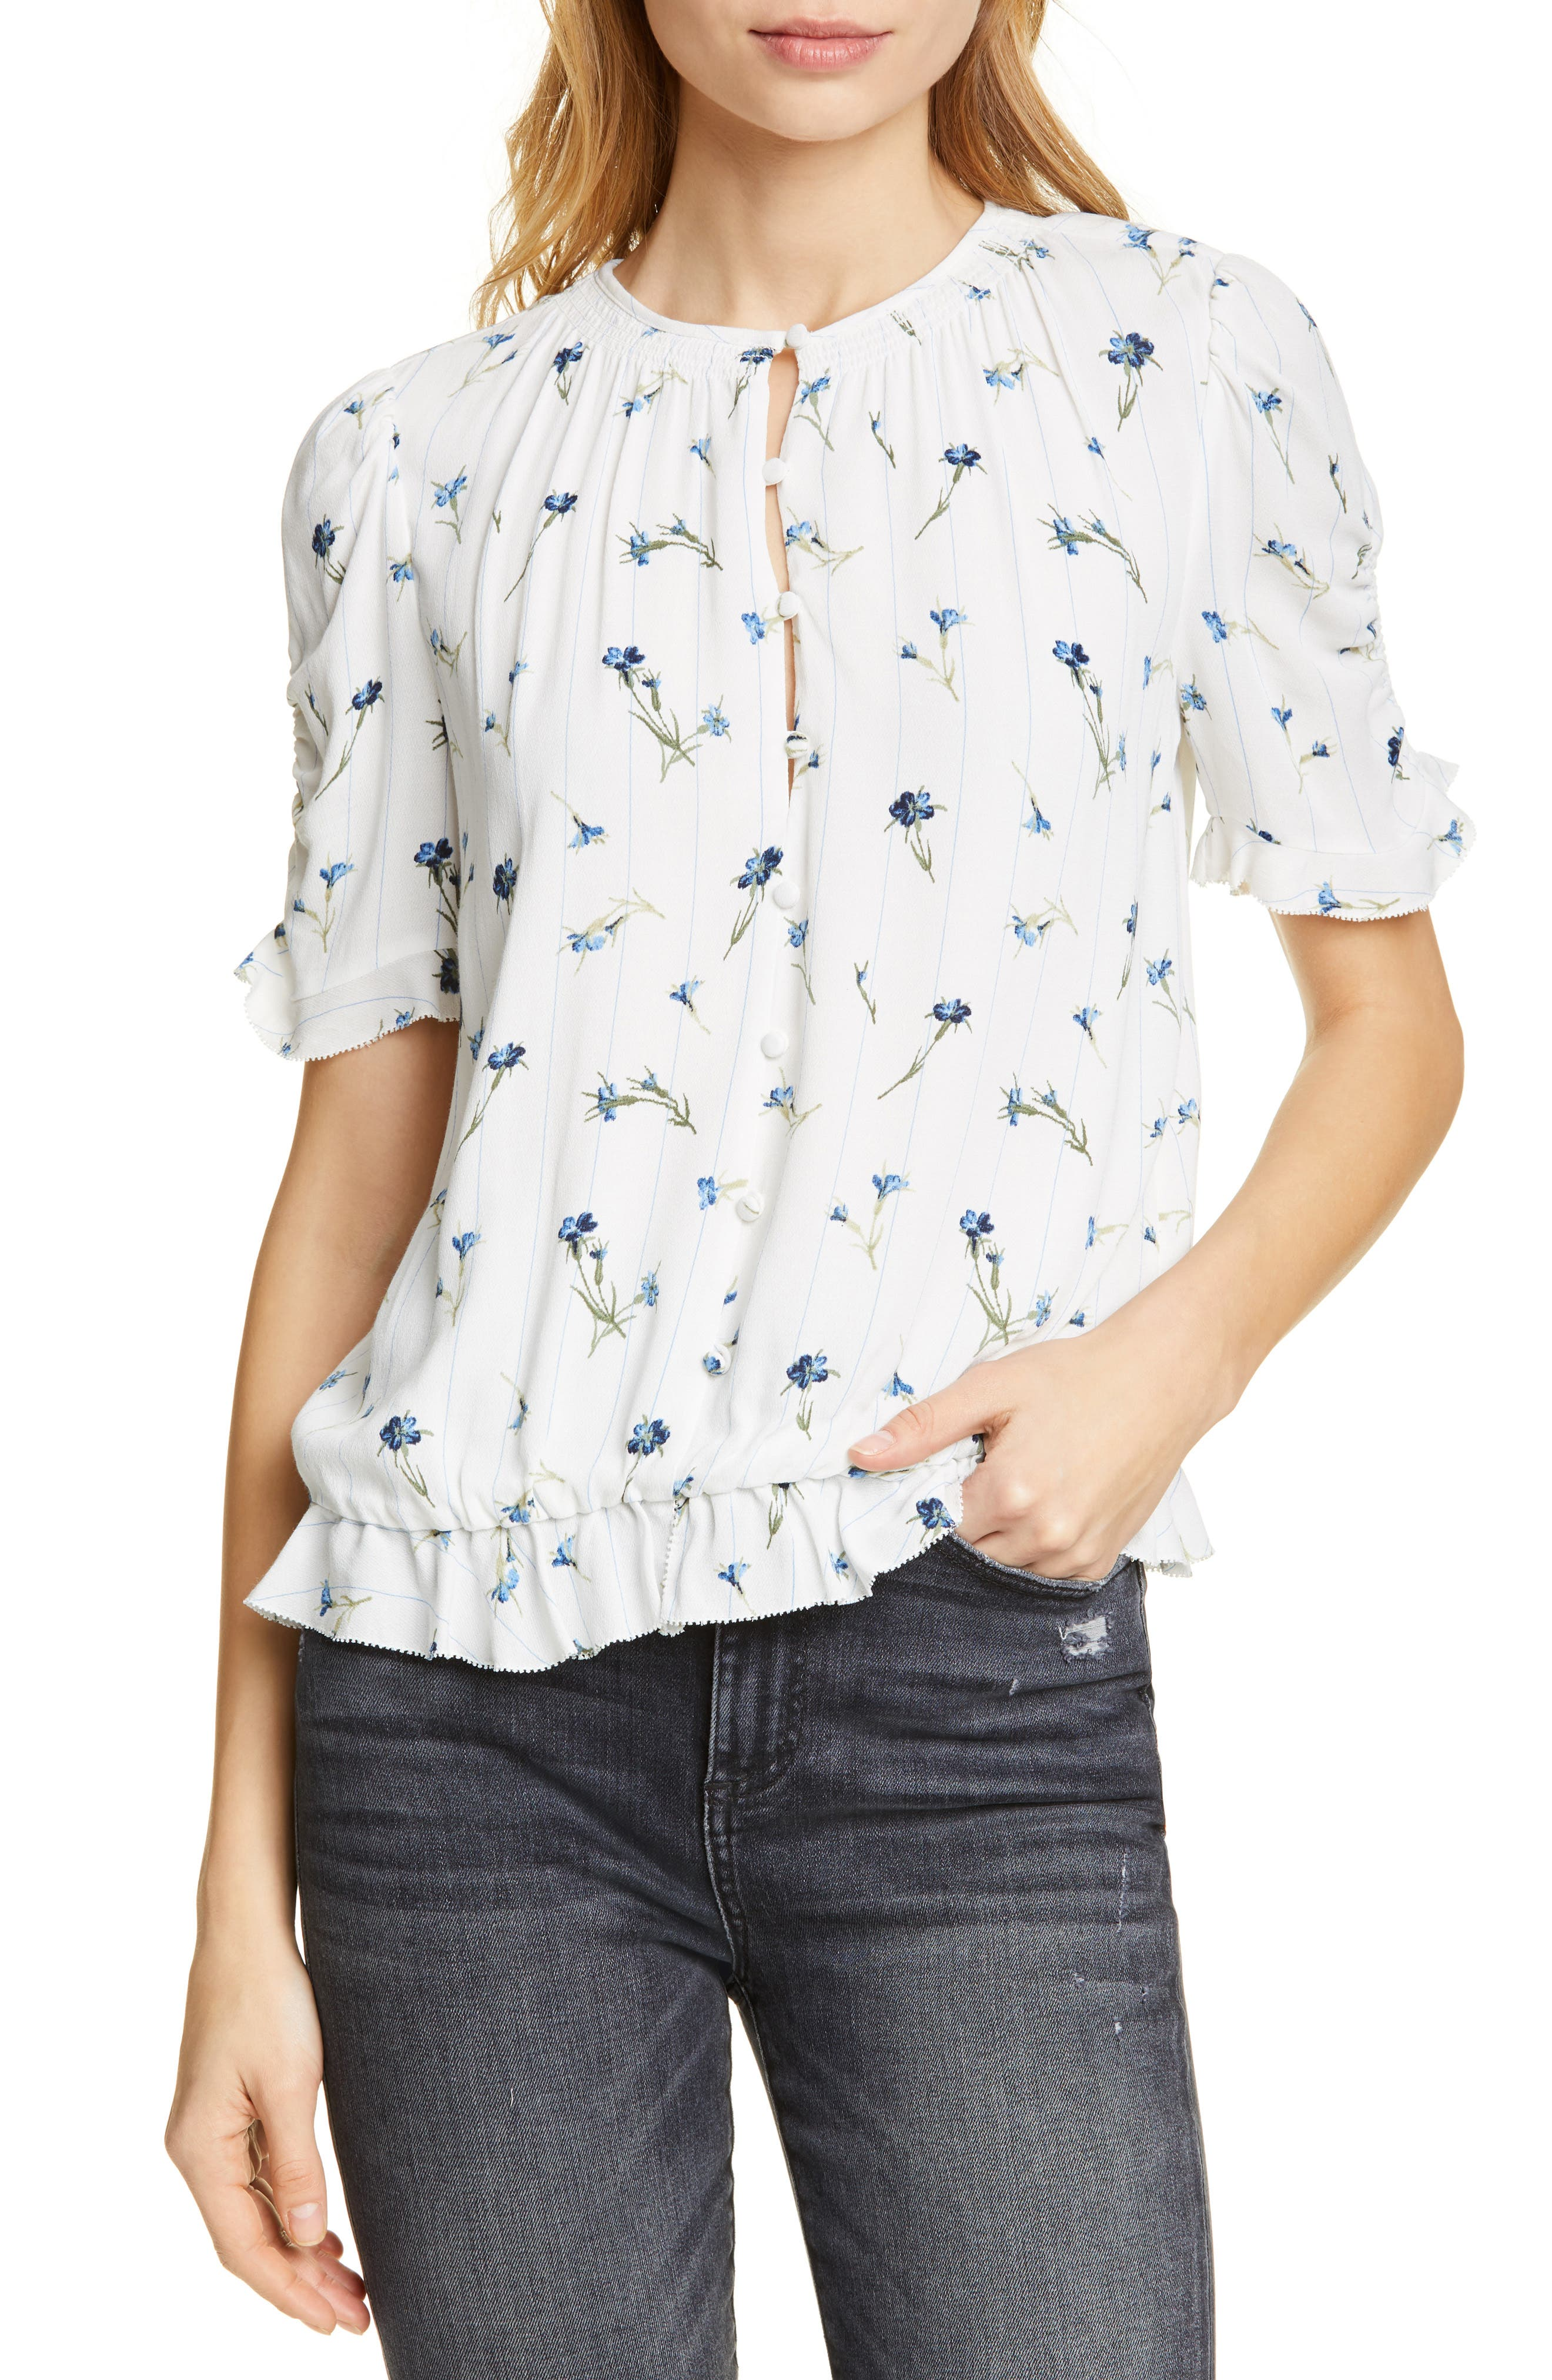 Joie Blouses VONNY FLORAL RUCHED SLEEVE BLOUSE